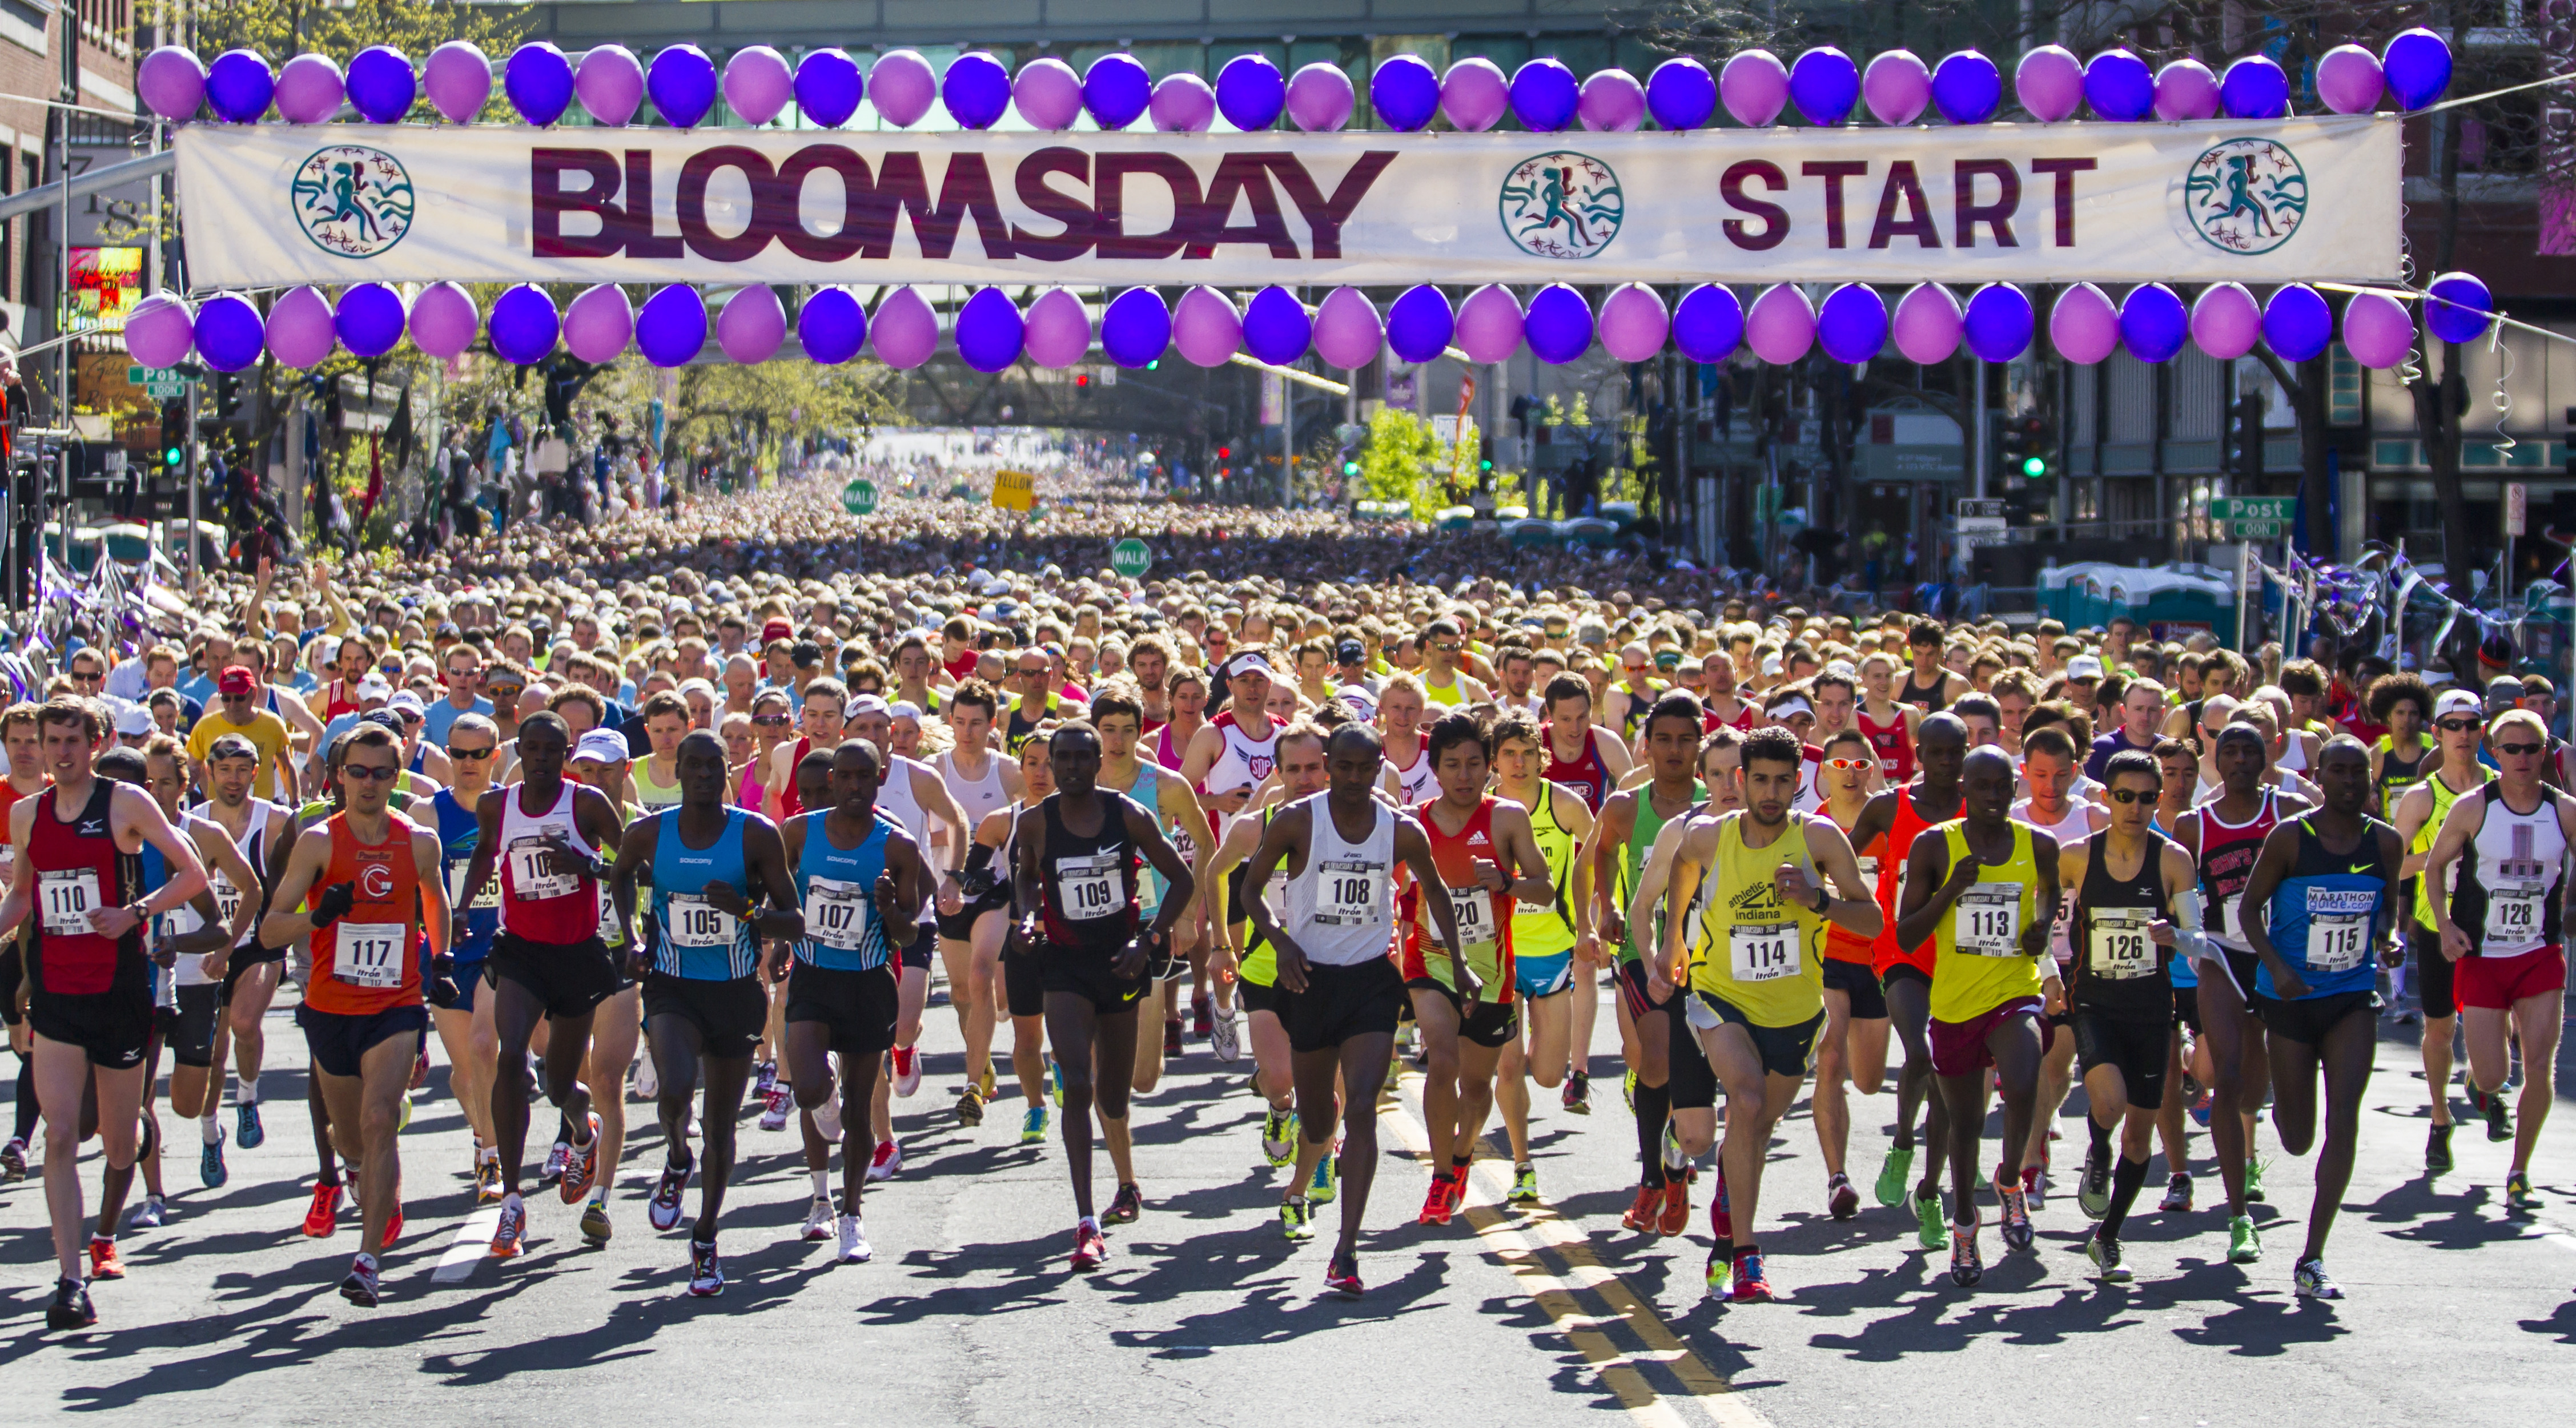 44th running of Lilac Bloomsday Run postponed to September 20th says race organizers